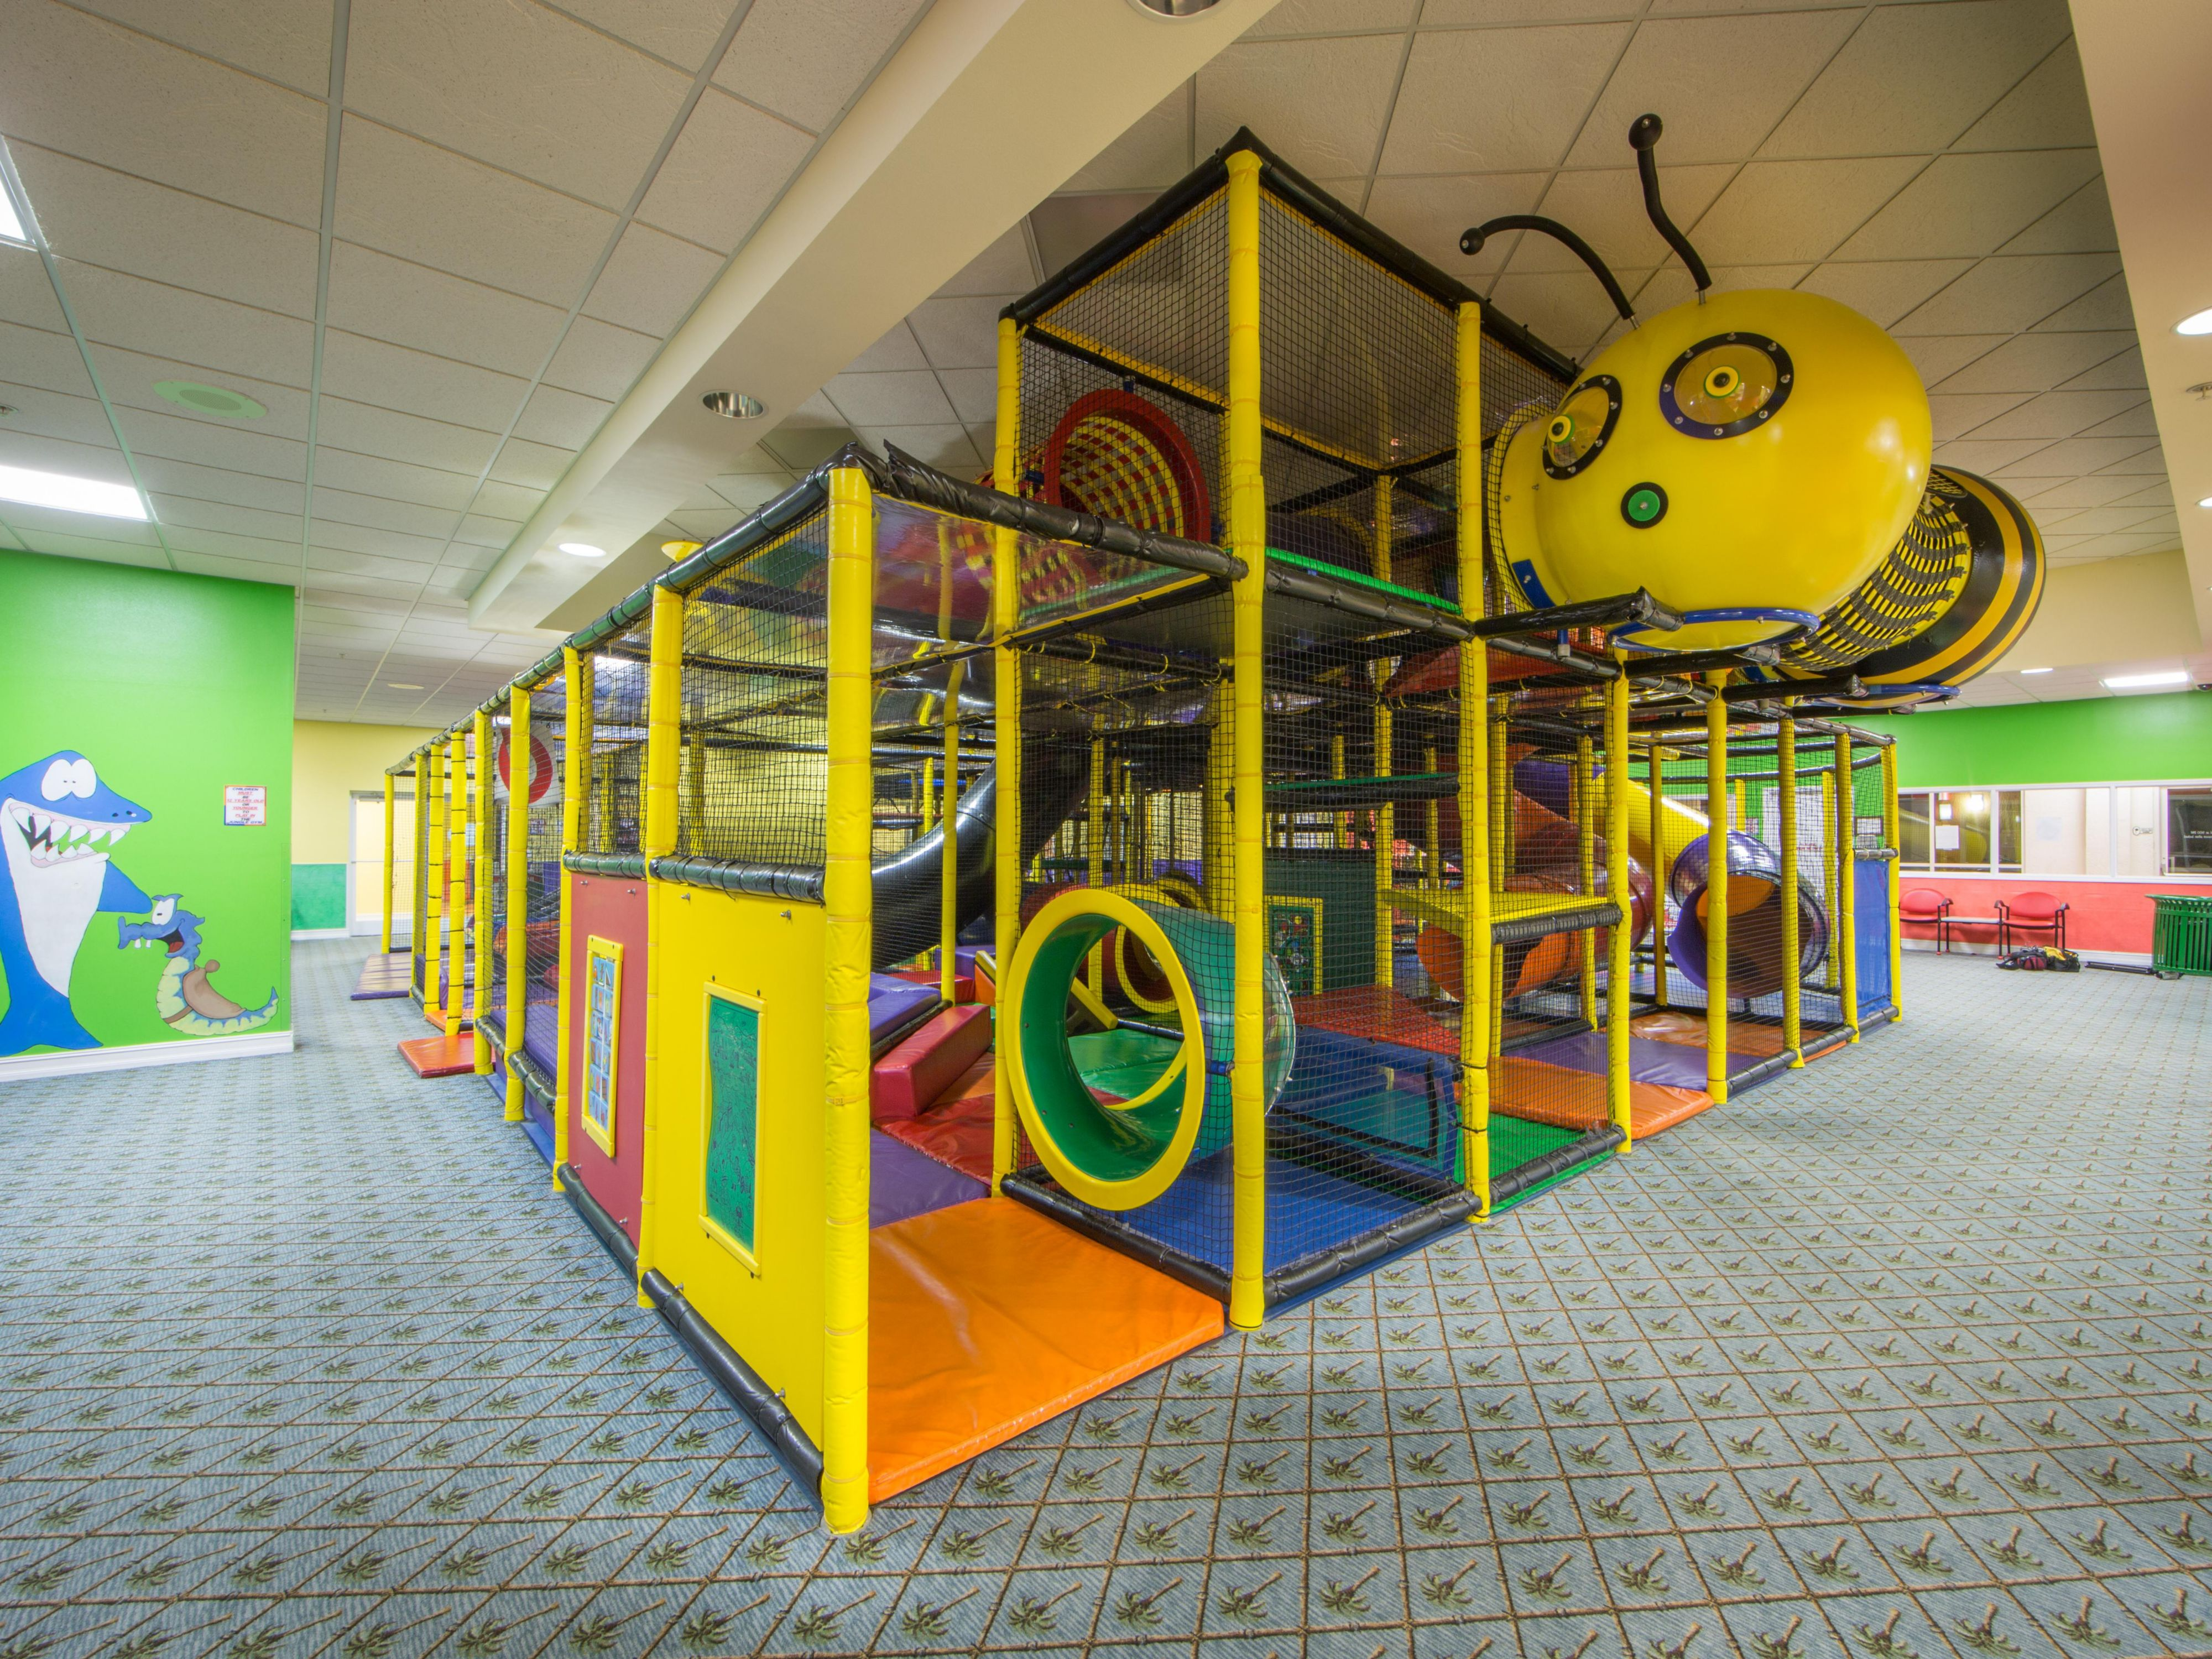 Children can play indoors in the activity room at the resort